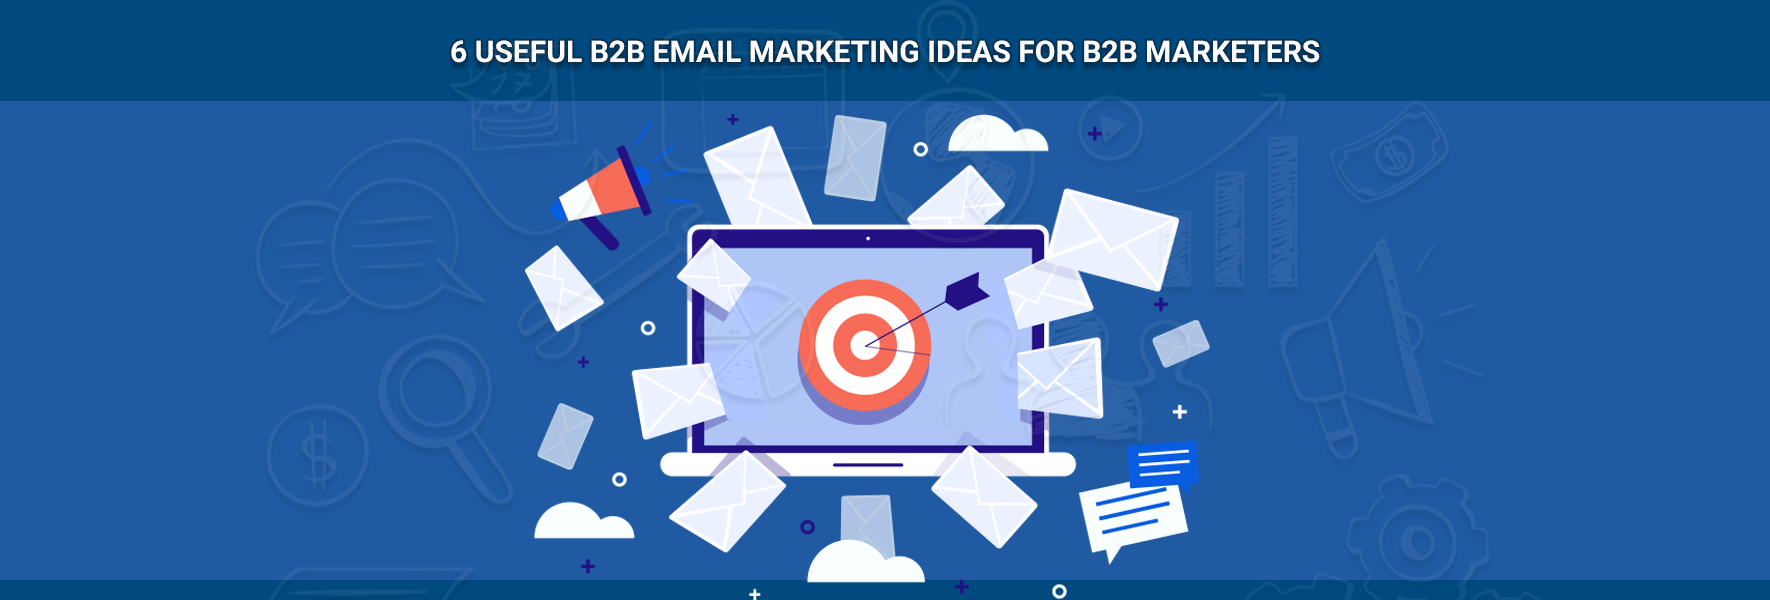 6 Useful B2B Email Marketing Ideas for B2B marketers